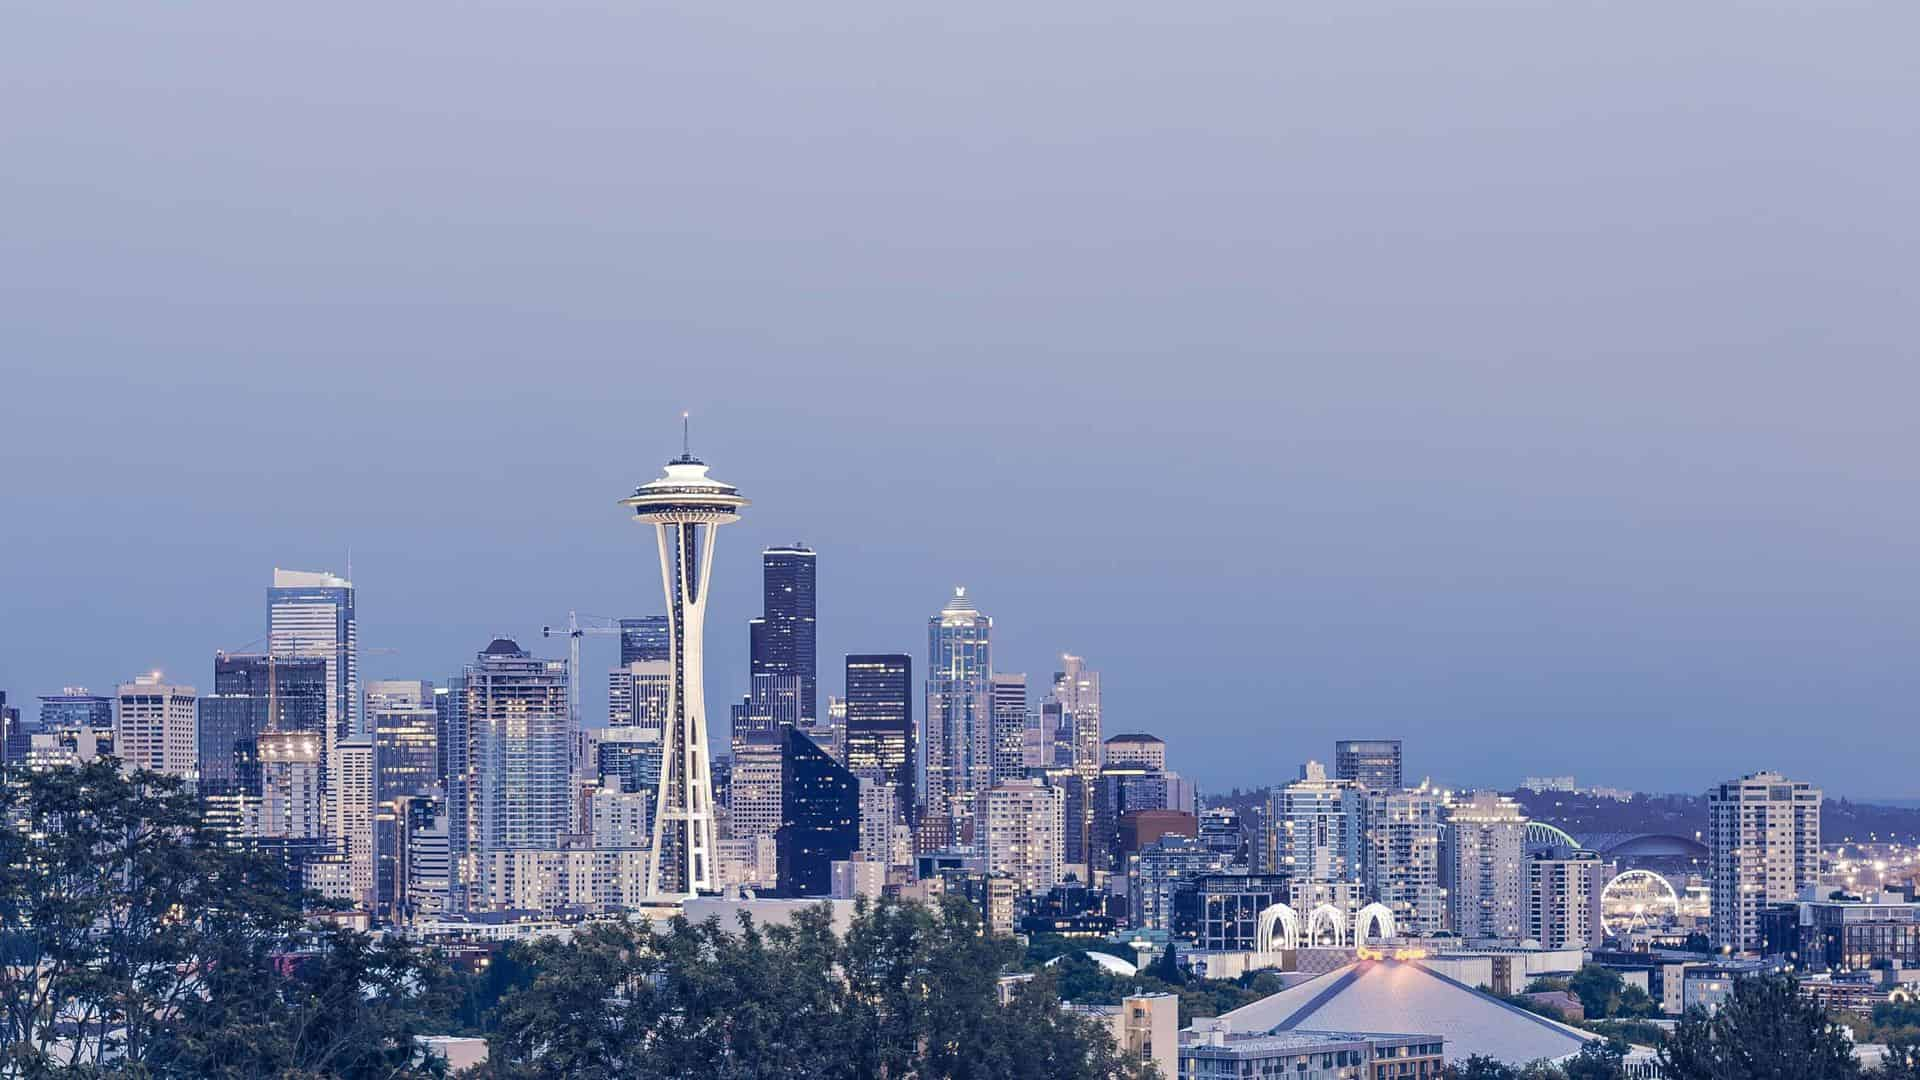 Skyline and the Space Needle building